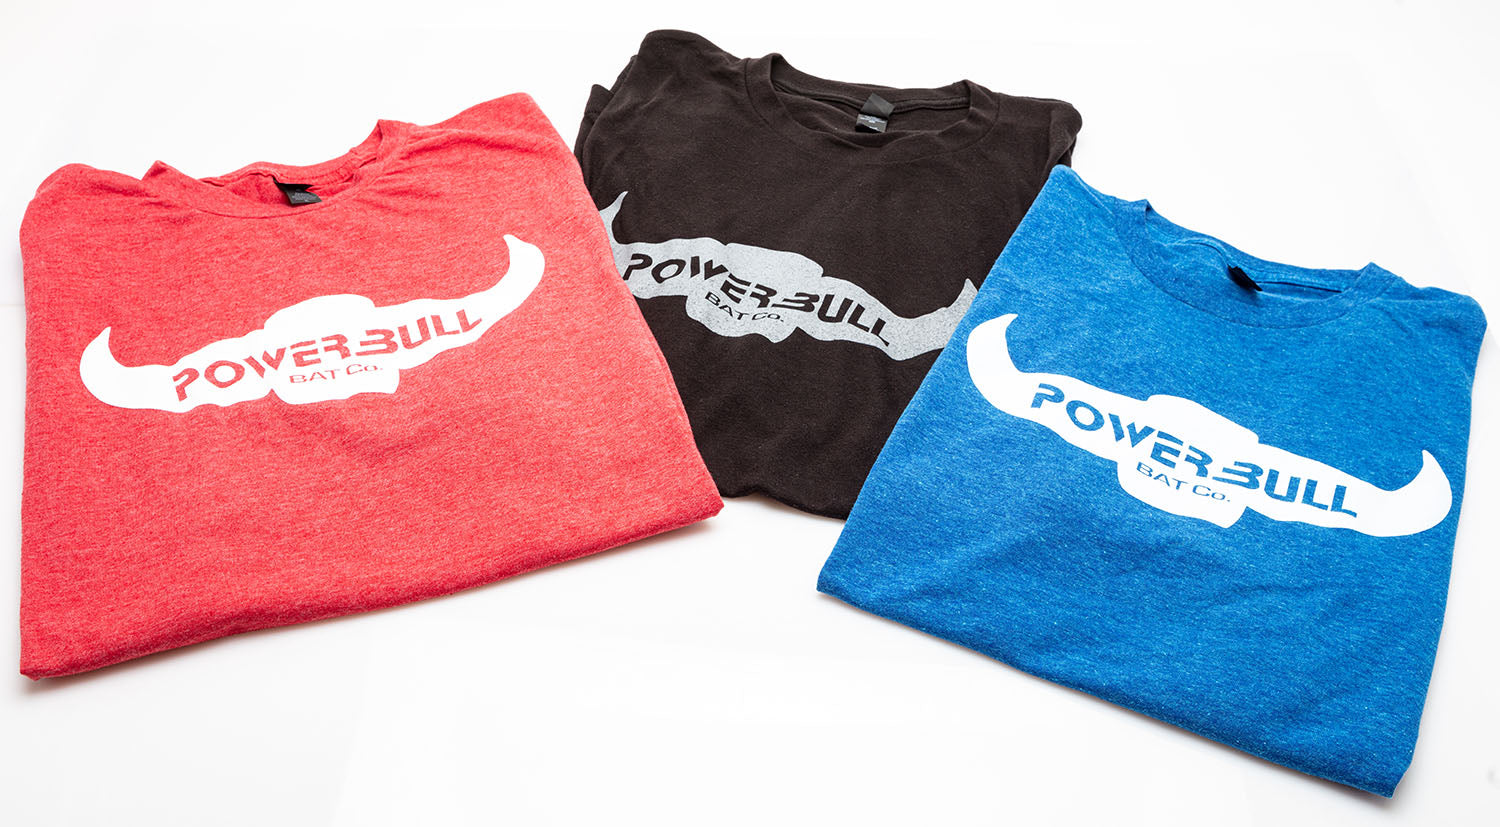 Official Powerbull Logo T-shirt